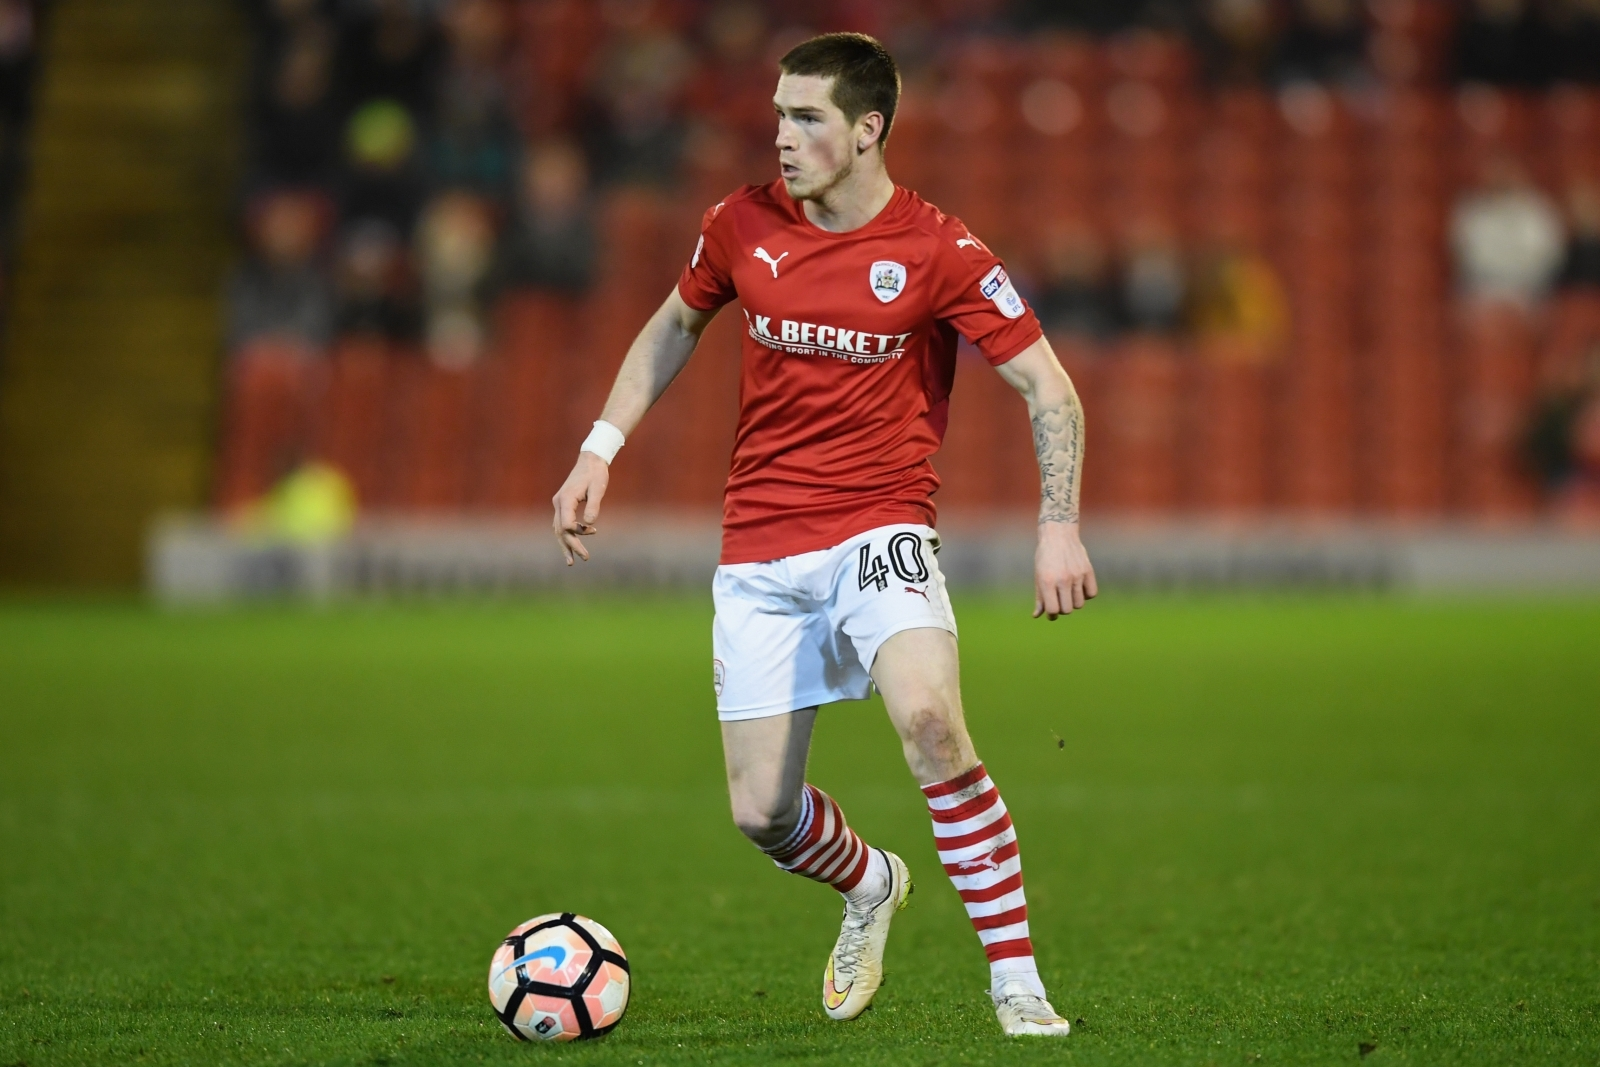 No amusing  GIF as Ryan Kent's Liverpool loan exit confirmed